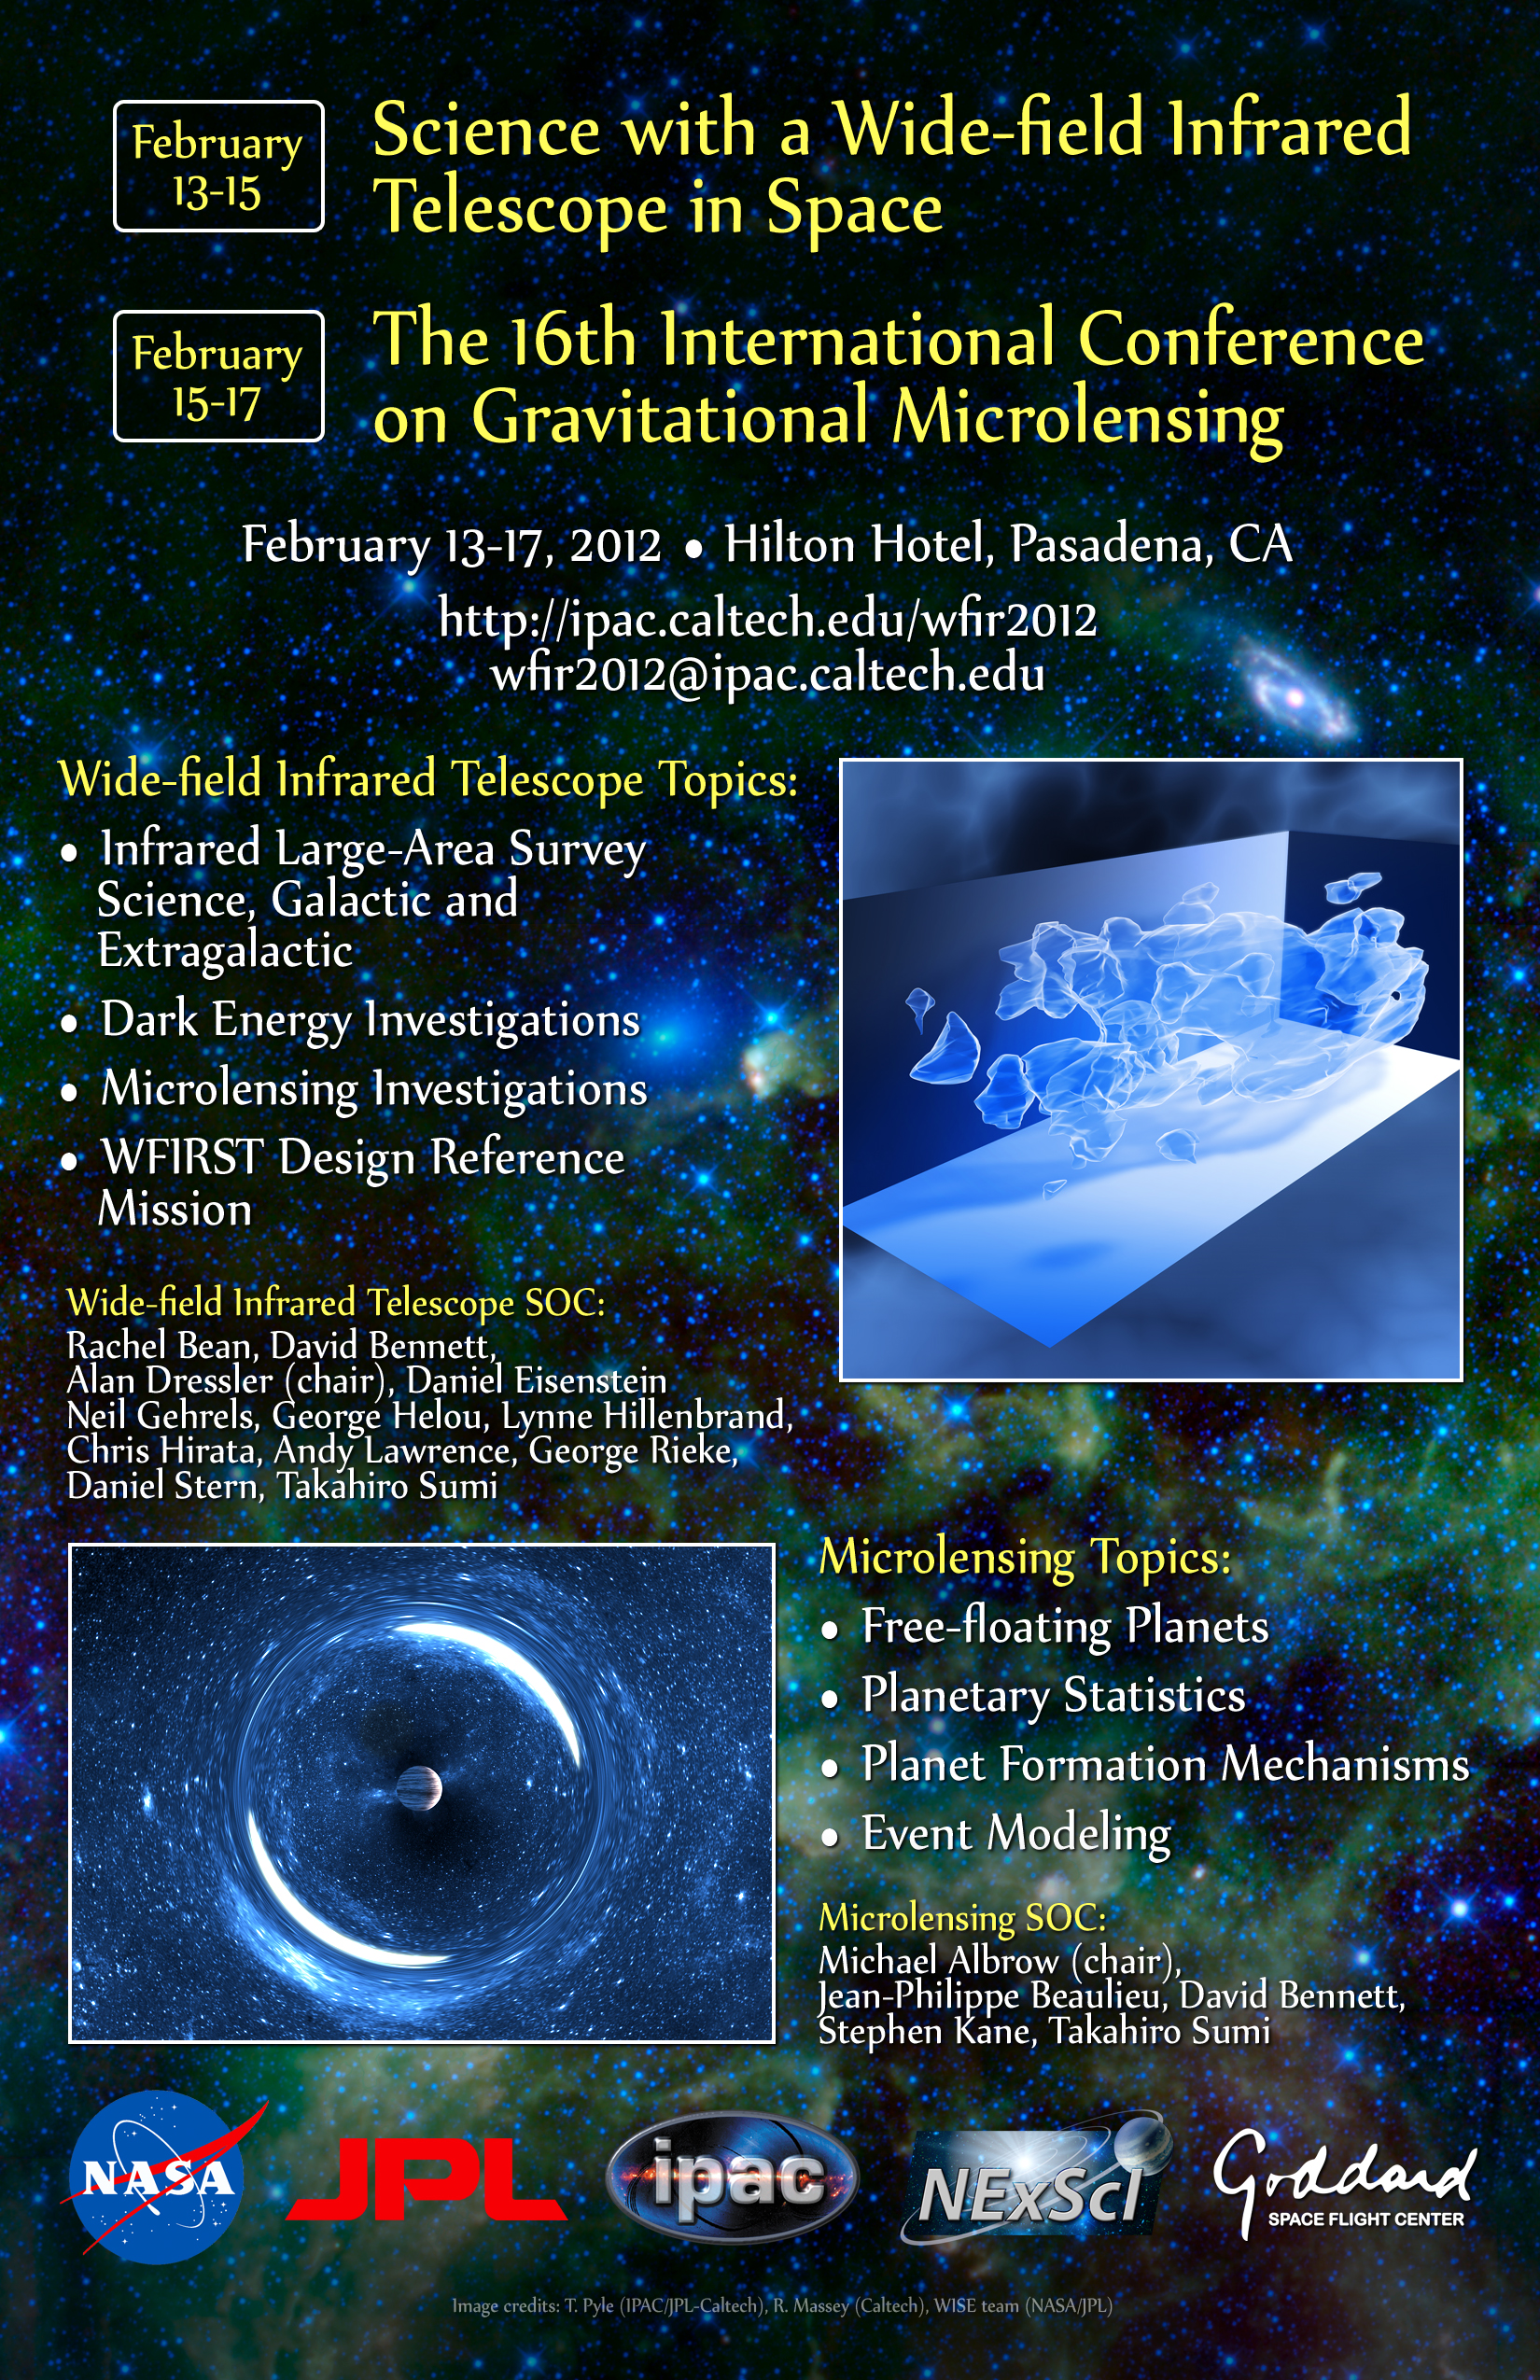 WFIR 2012 Conference Poster